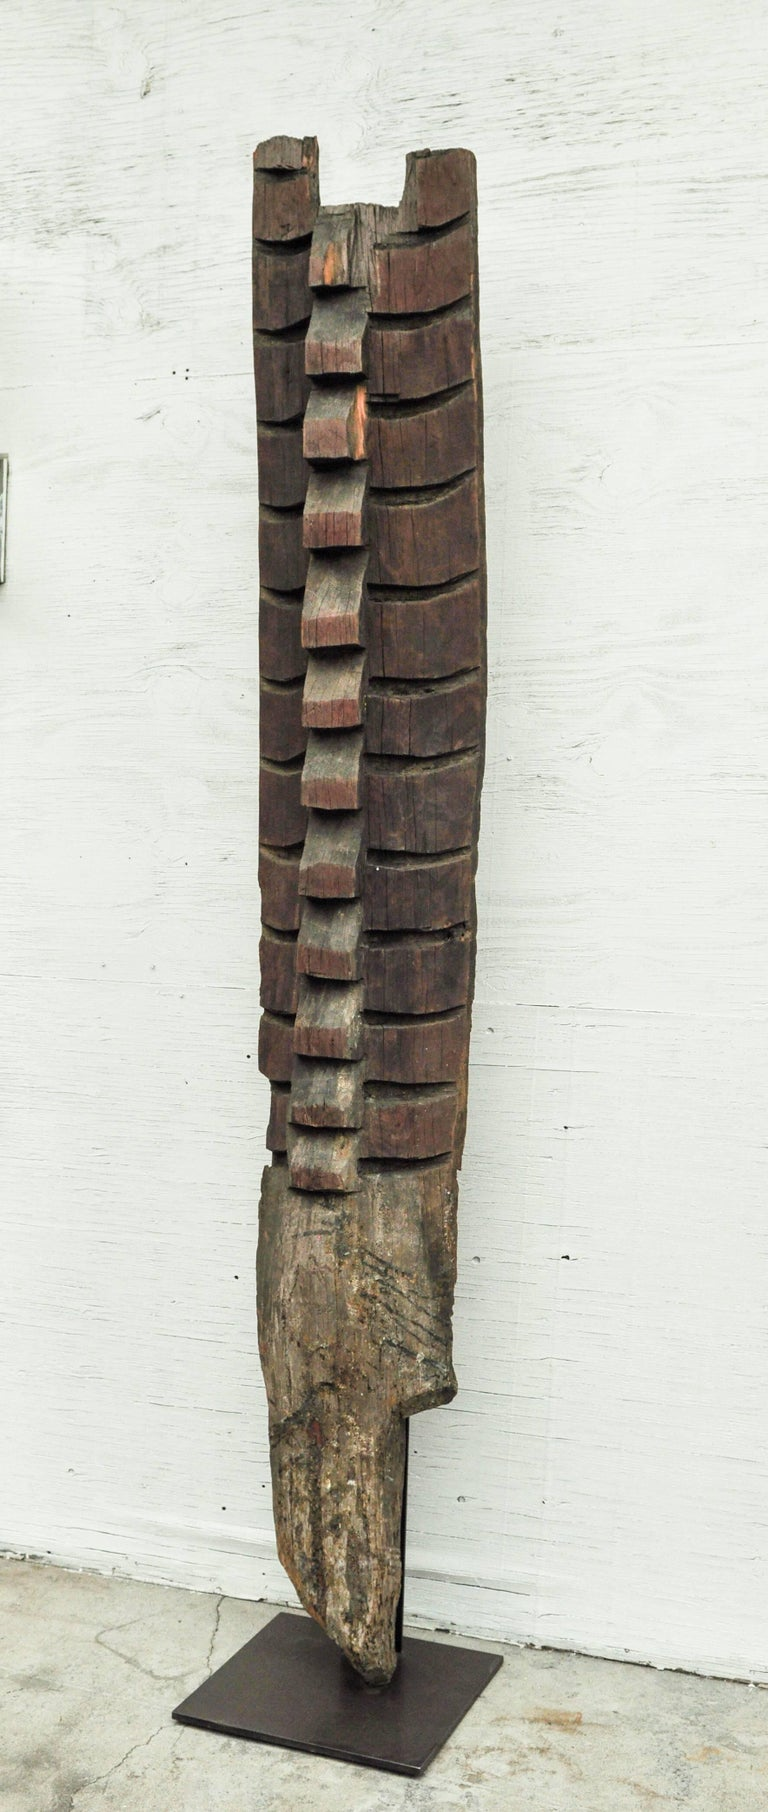 Tribal house panel from Nagaland with mithun motif. Mid-20th century. Mounted on a steel base. This commemorative house panel from Nagaland, most probably from an area bordering Manipur, was a decorative feature marking the house of a respected and